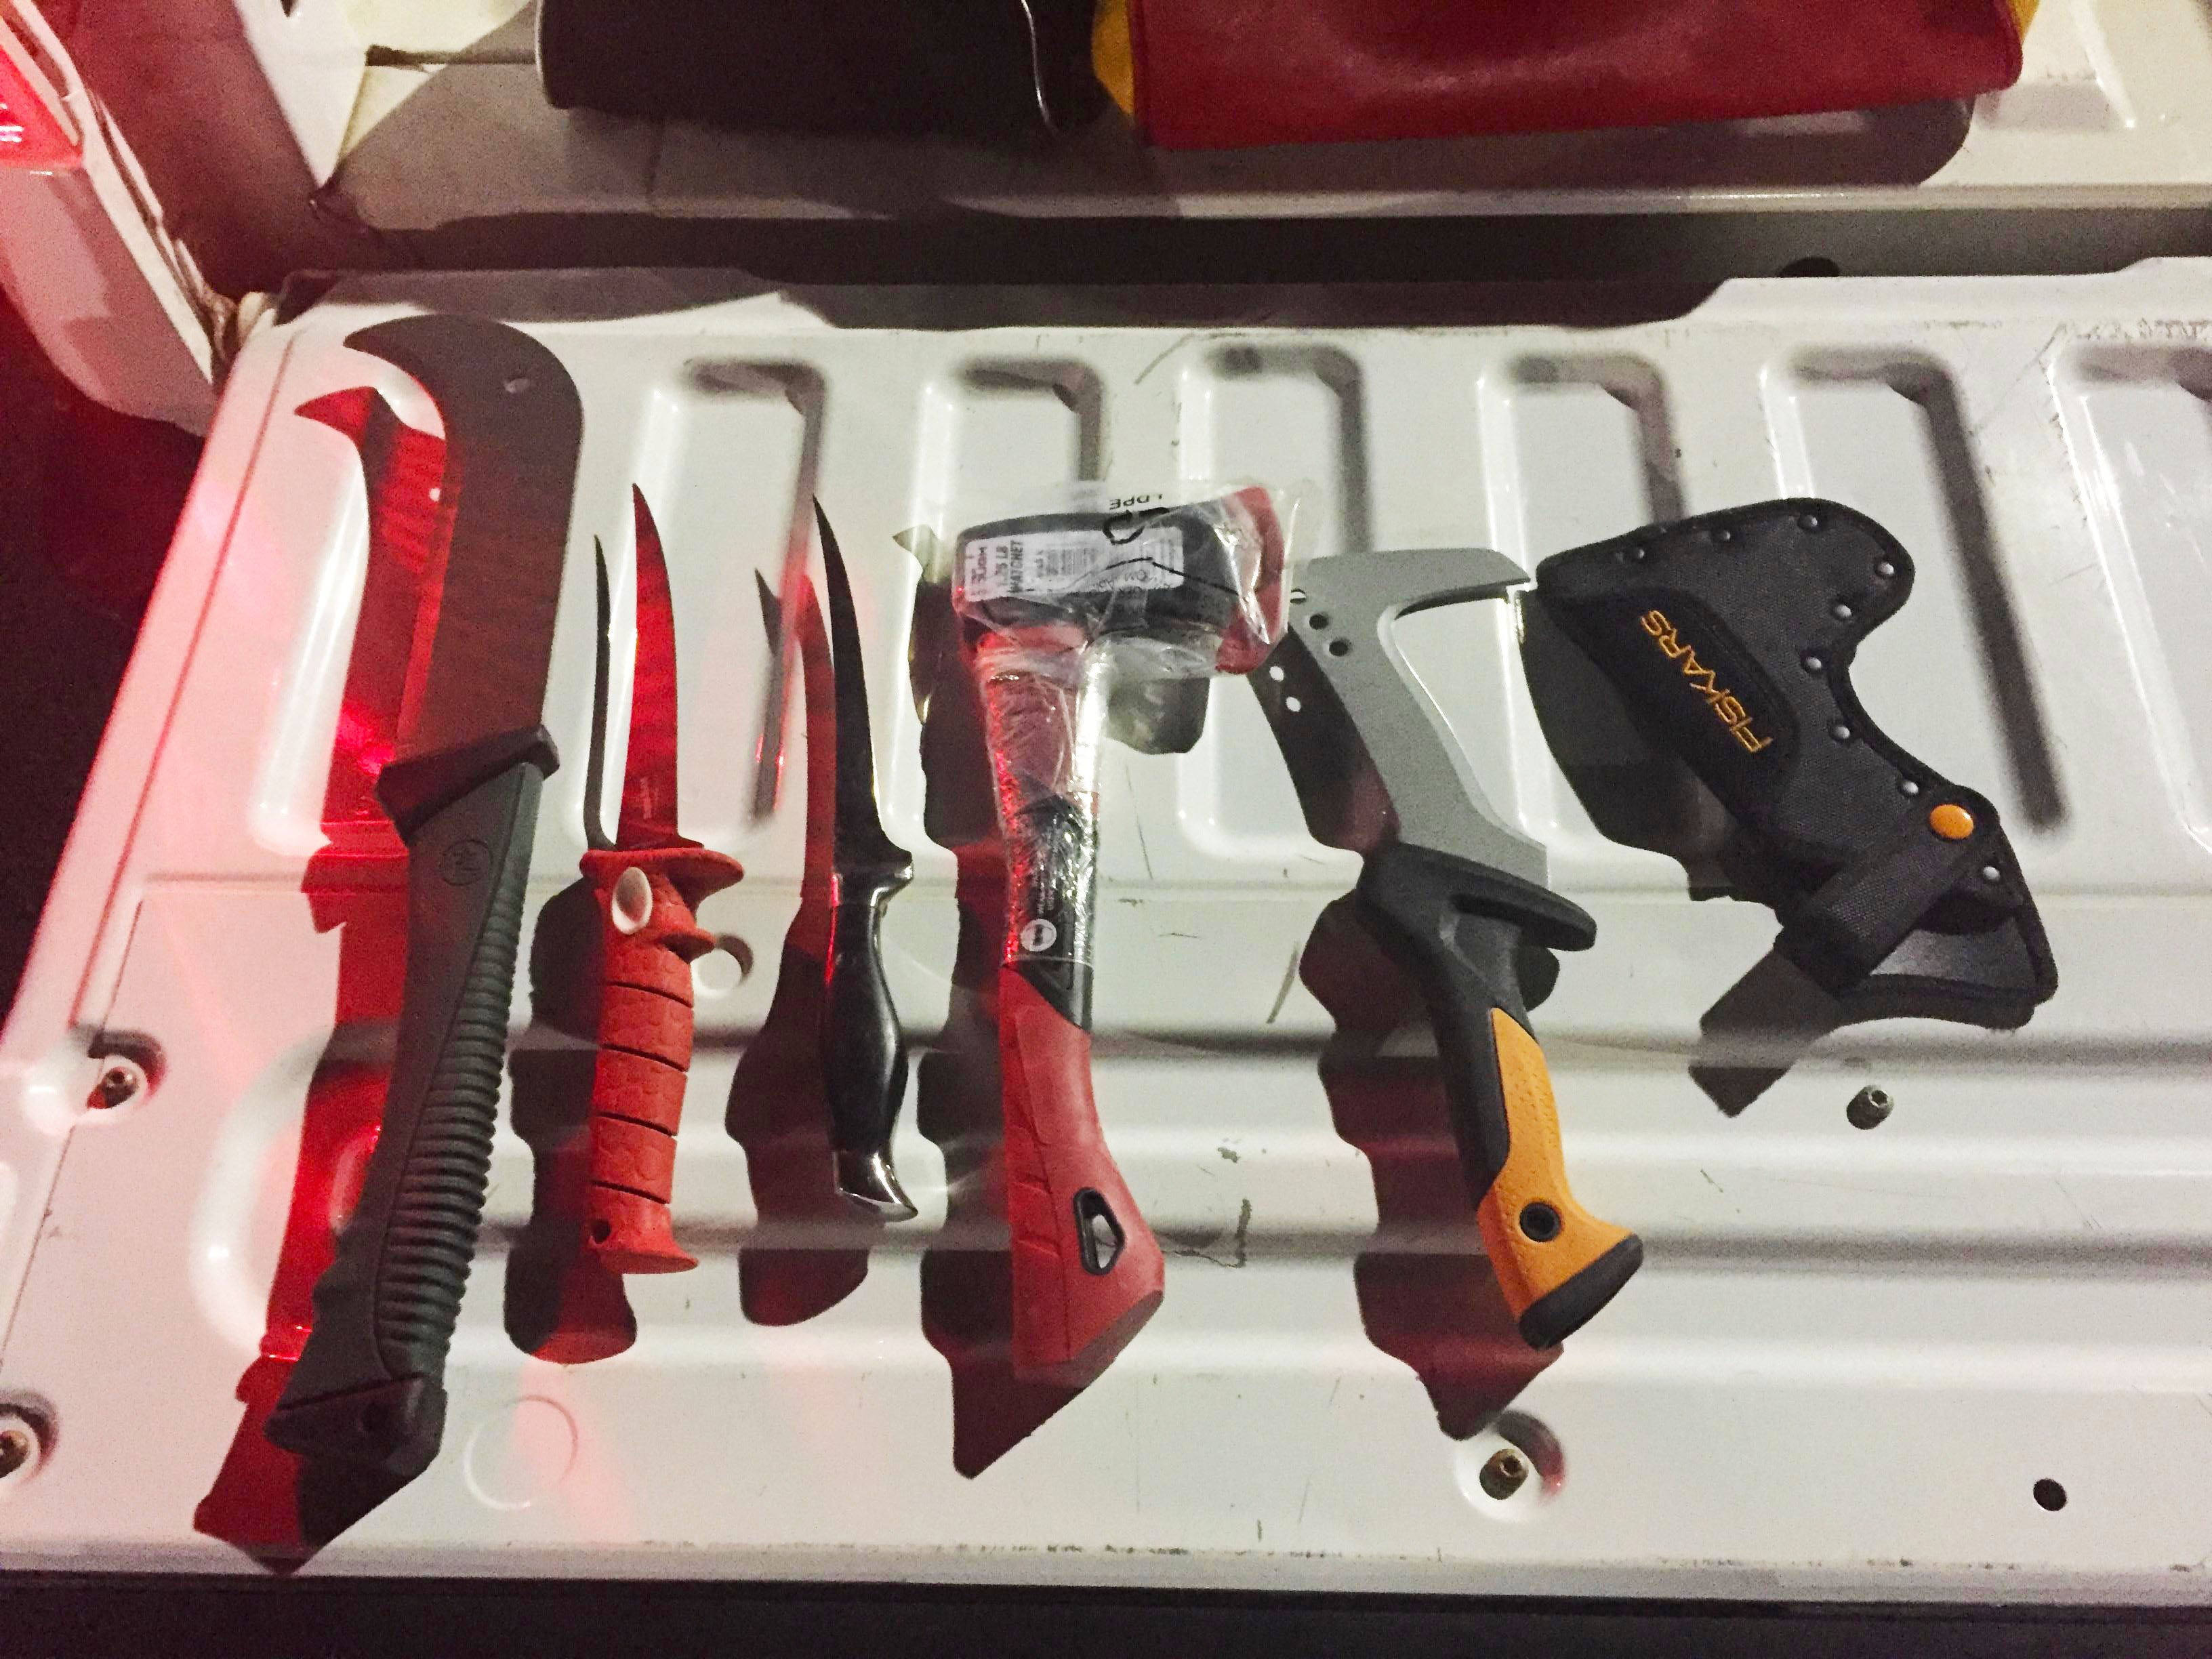 A bag of large knives were found within arms reach of a man who said he thought about killing the deputy that pulled him over. Photo: Walton County Sheriff's Office.